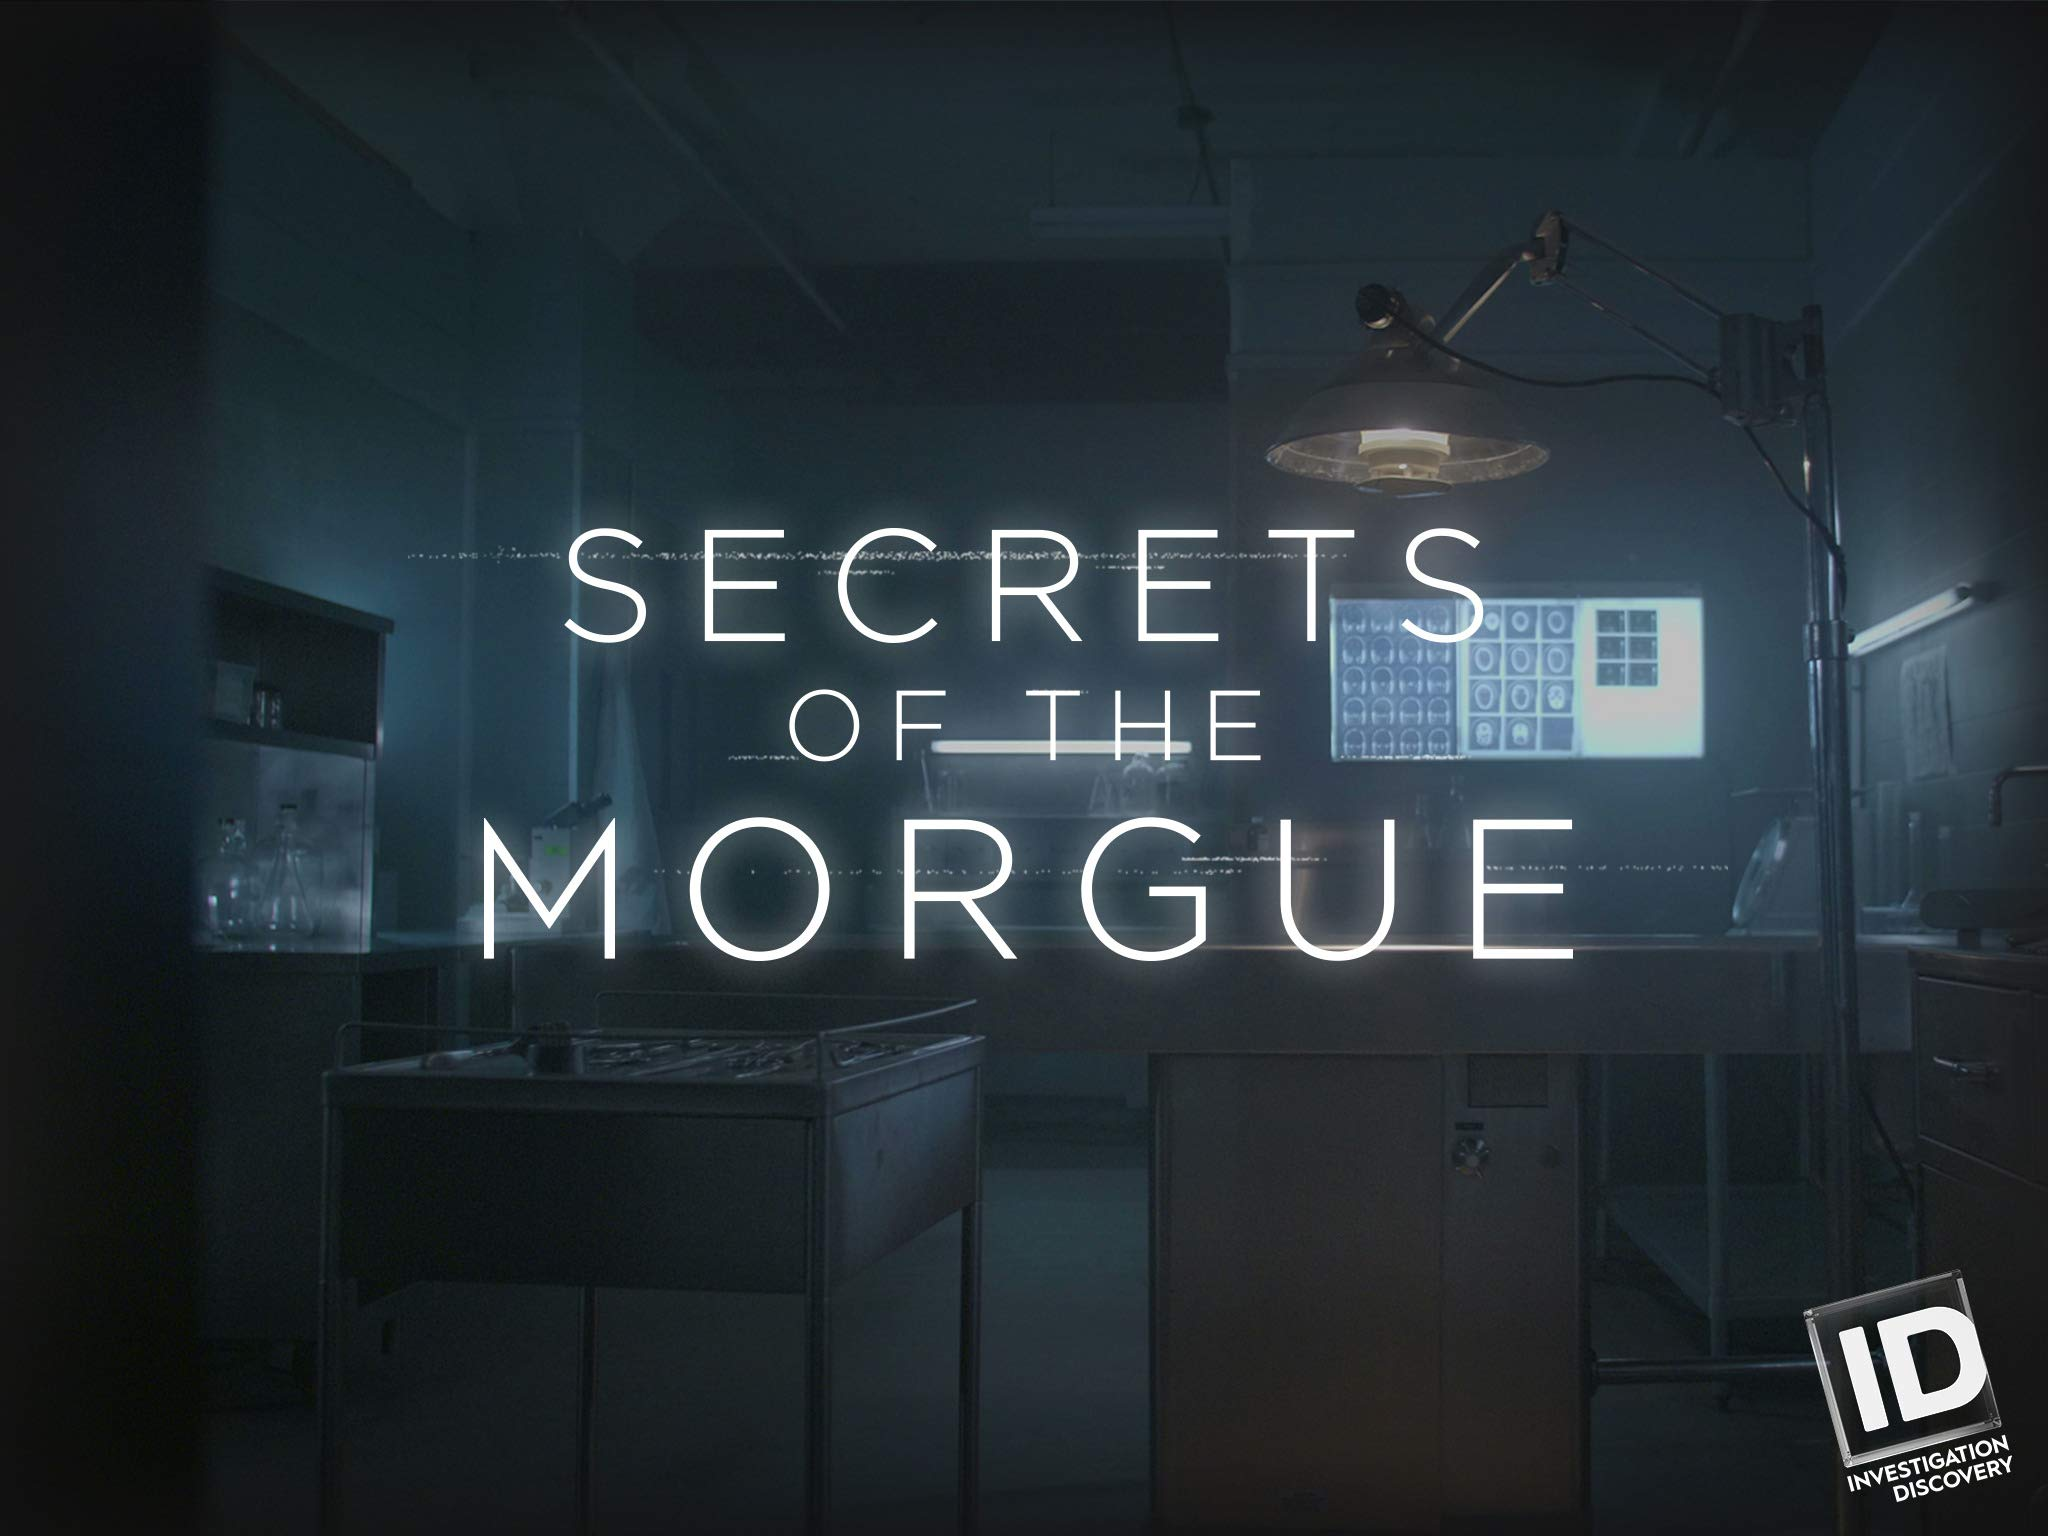 Amazon com: Watch Secrets of the Morgue Season 1 | Prime Video